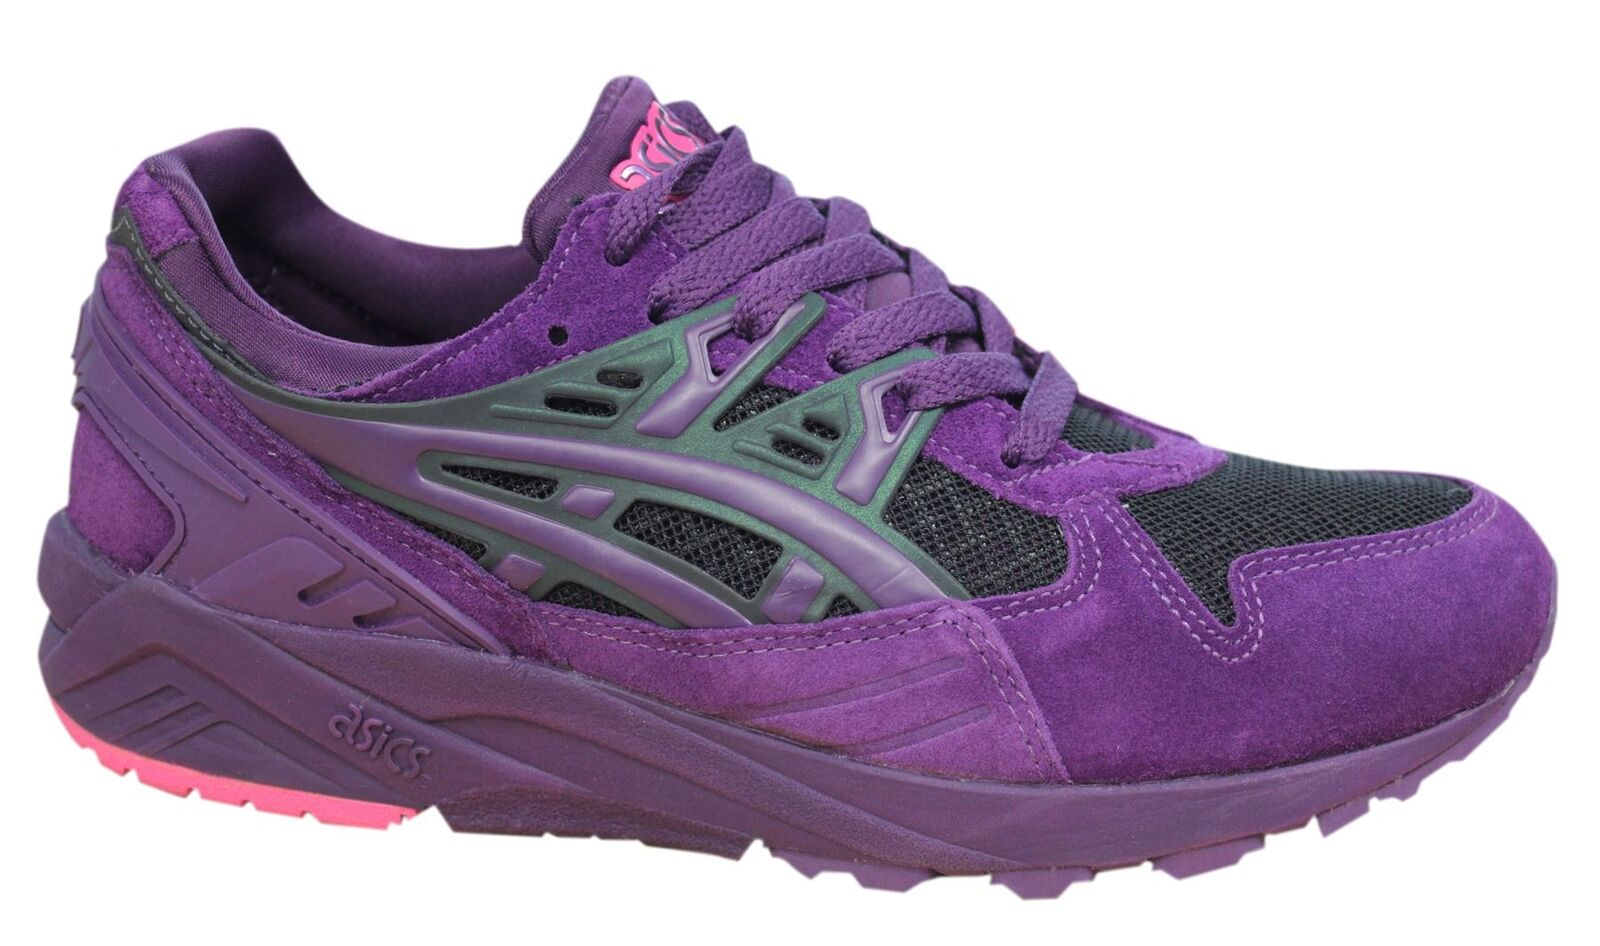 Asics Gel-Kayano Up Lace Up Gel-Kayano Violet Synthetic hommes Trainers H6M3N 3320 D3 0eb407